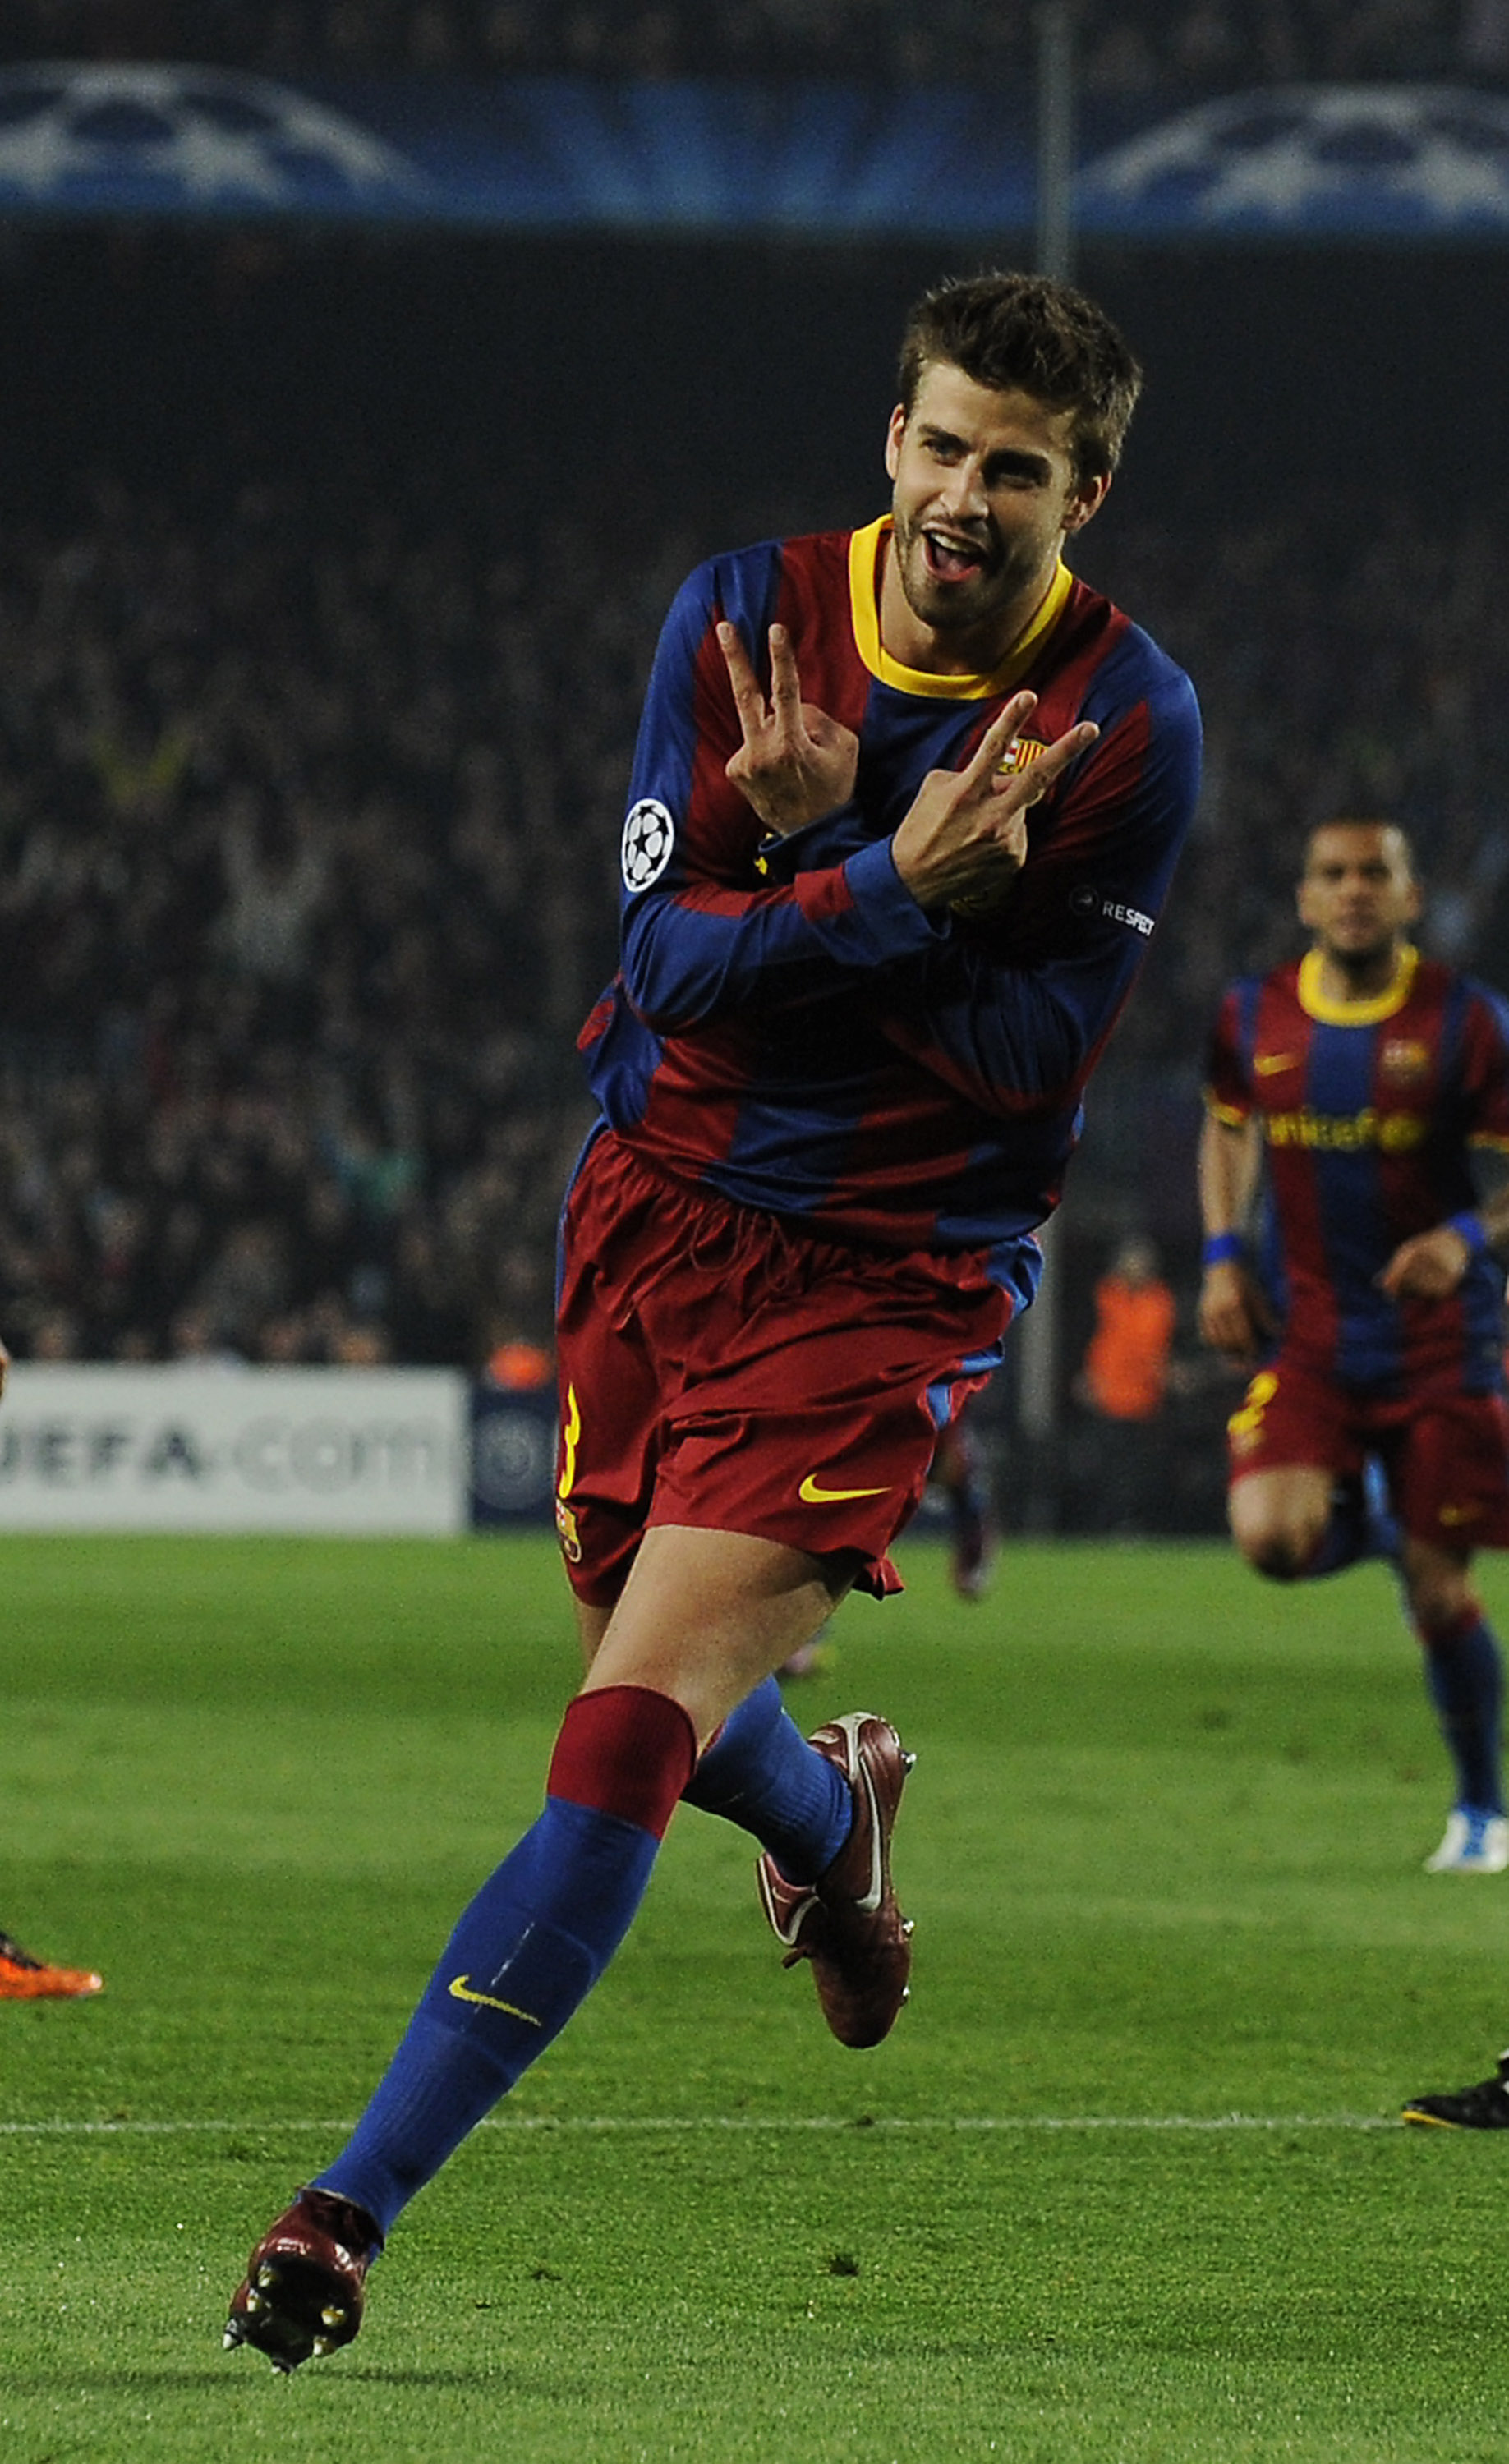 BARCELONA, SPAIN - APRIL 06:  Gerard Pique of FC Barcelona celebrates after scoring his team's third goal during the UEFA Champions League quarter final first leg match between Barcelona and Shakhtar Donetsk at the Camp Nou Stadium on April 6, 2011 in Bar